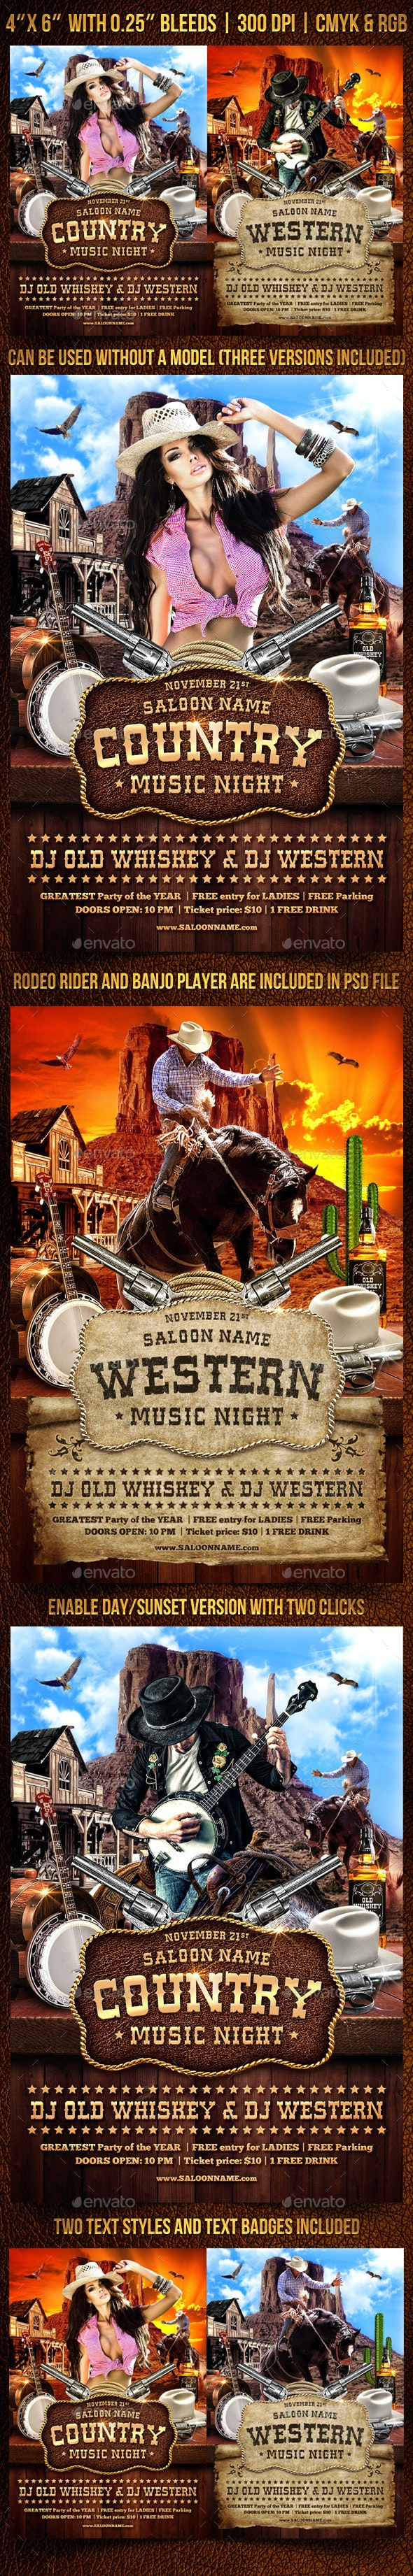 Country and Western Flyer Template - Clubs & Parties Events